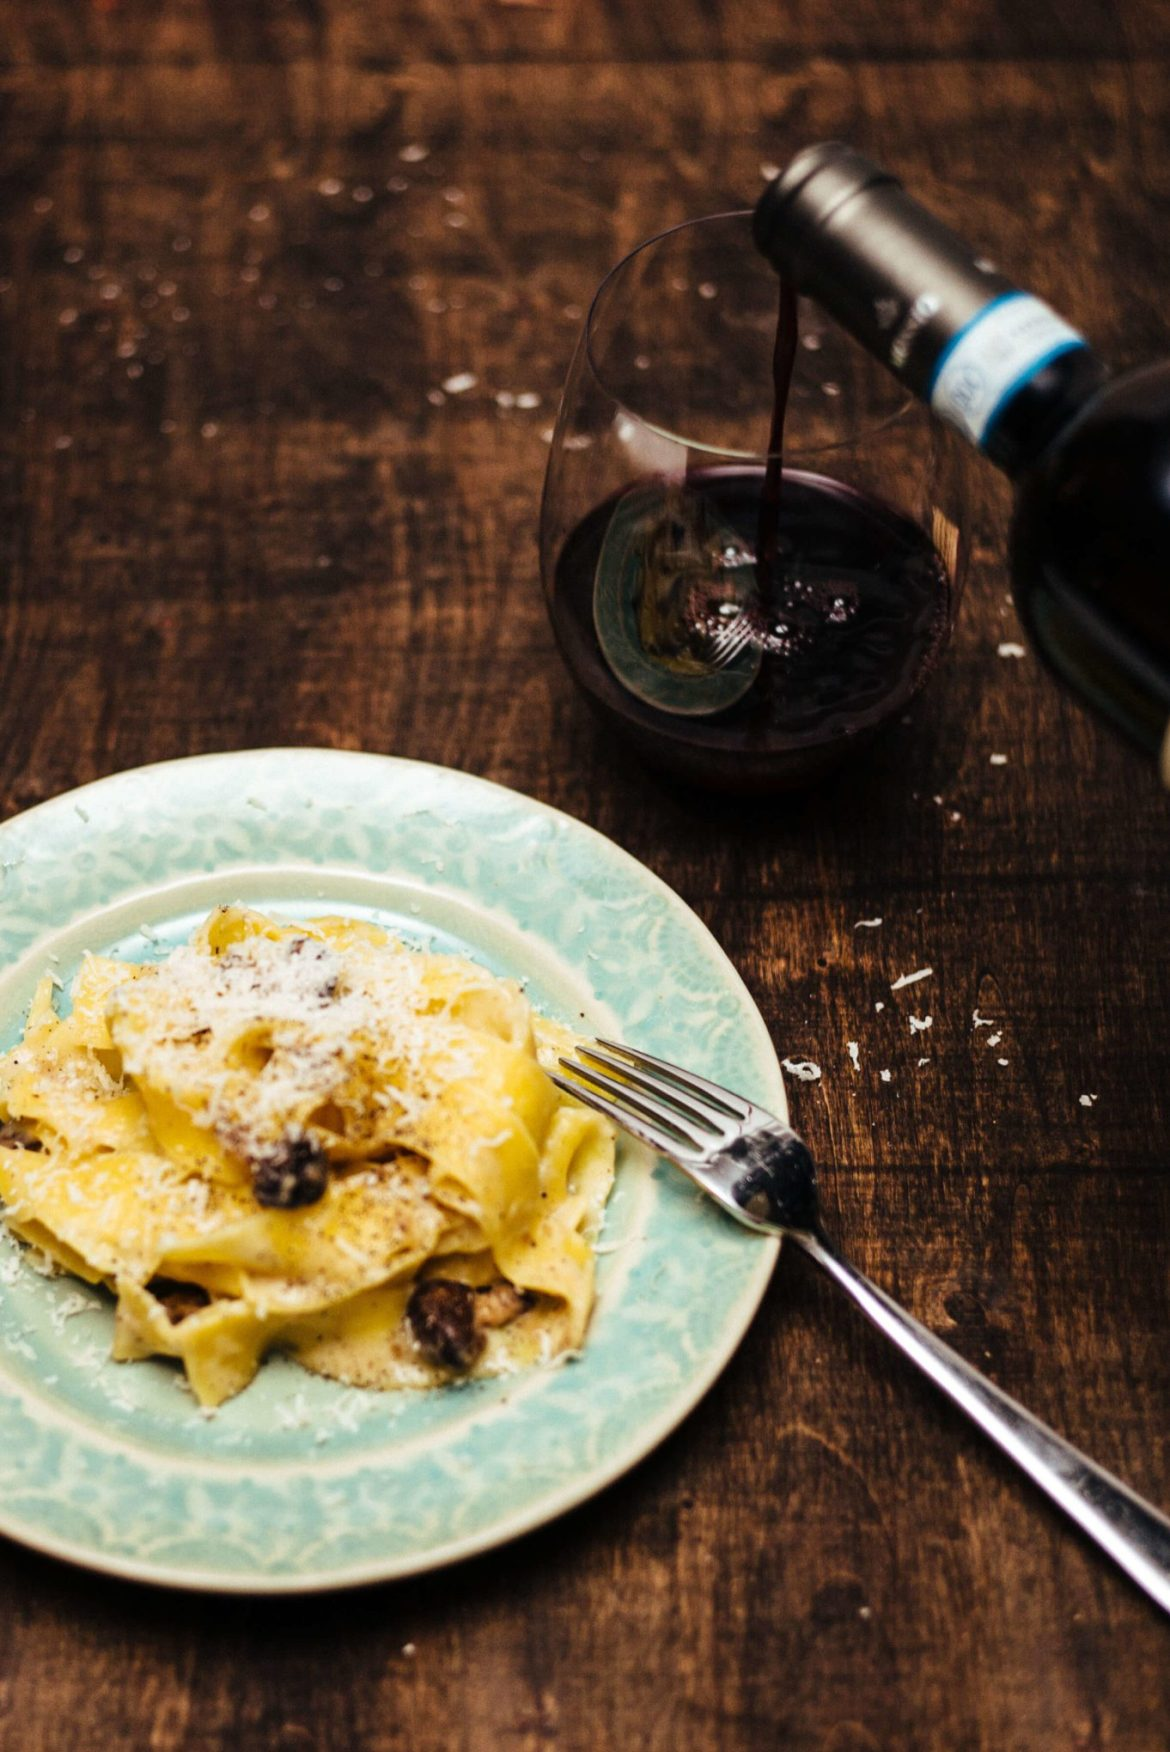 Common mistakes not to make when making pasta recipes, get these tips directly from the taste edit